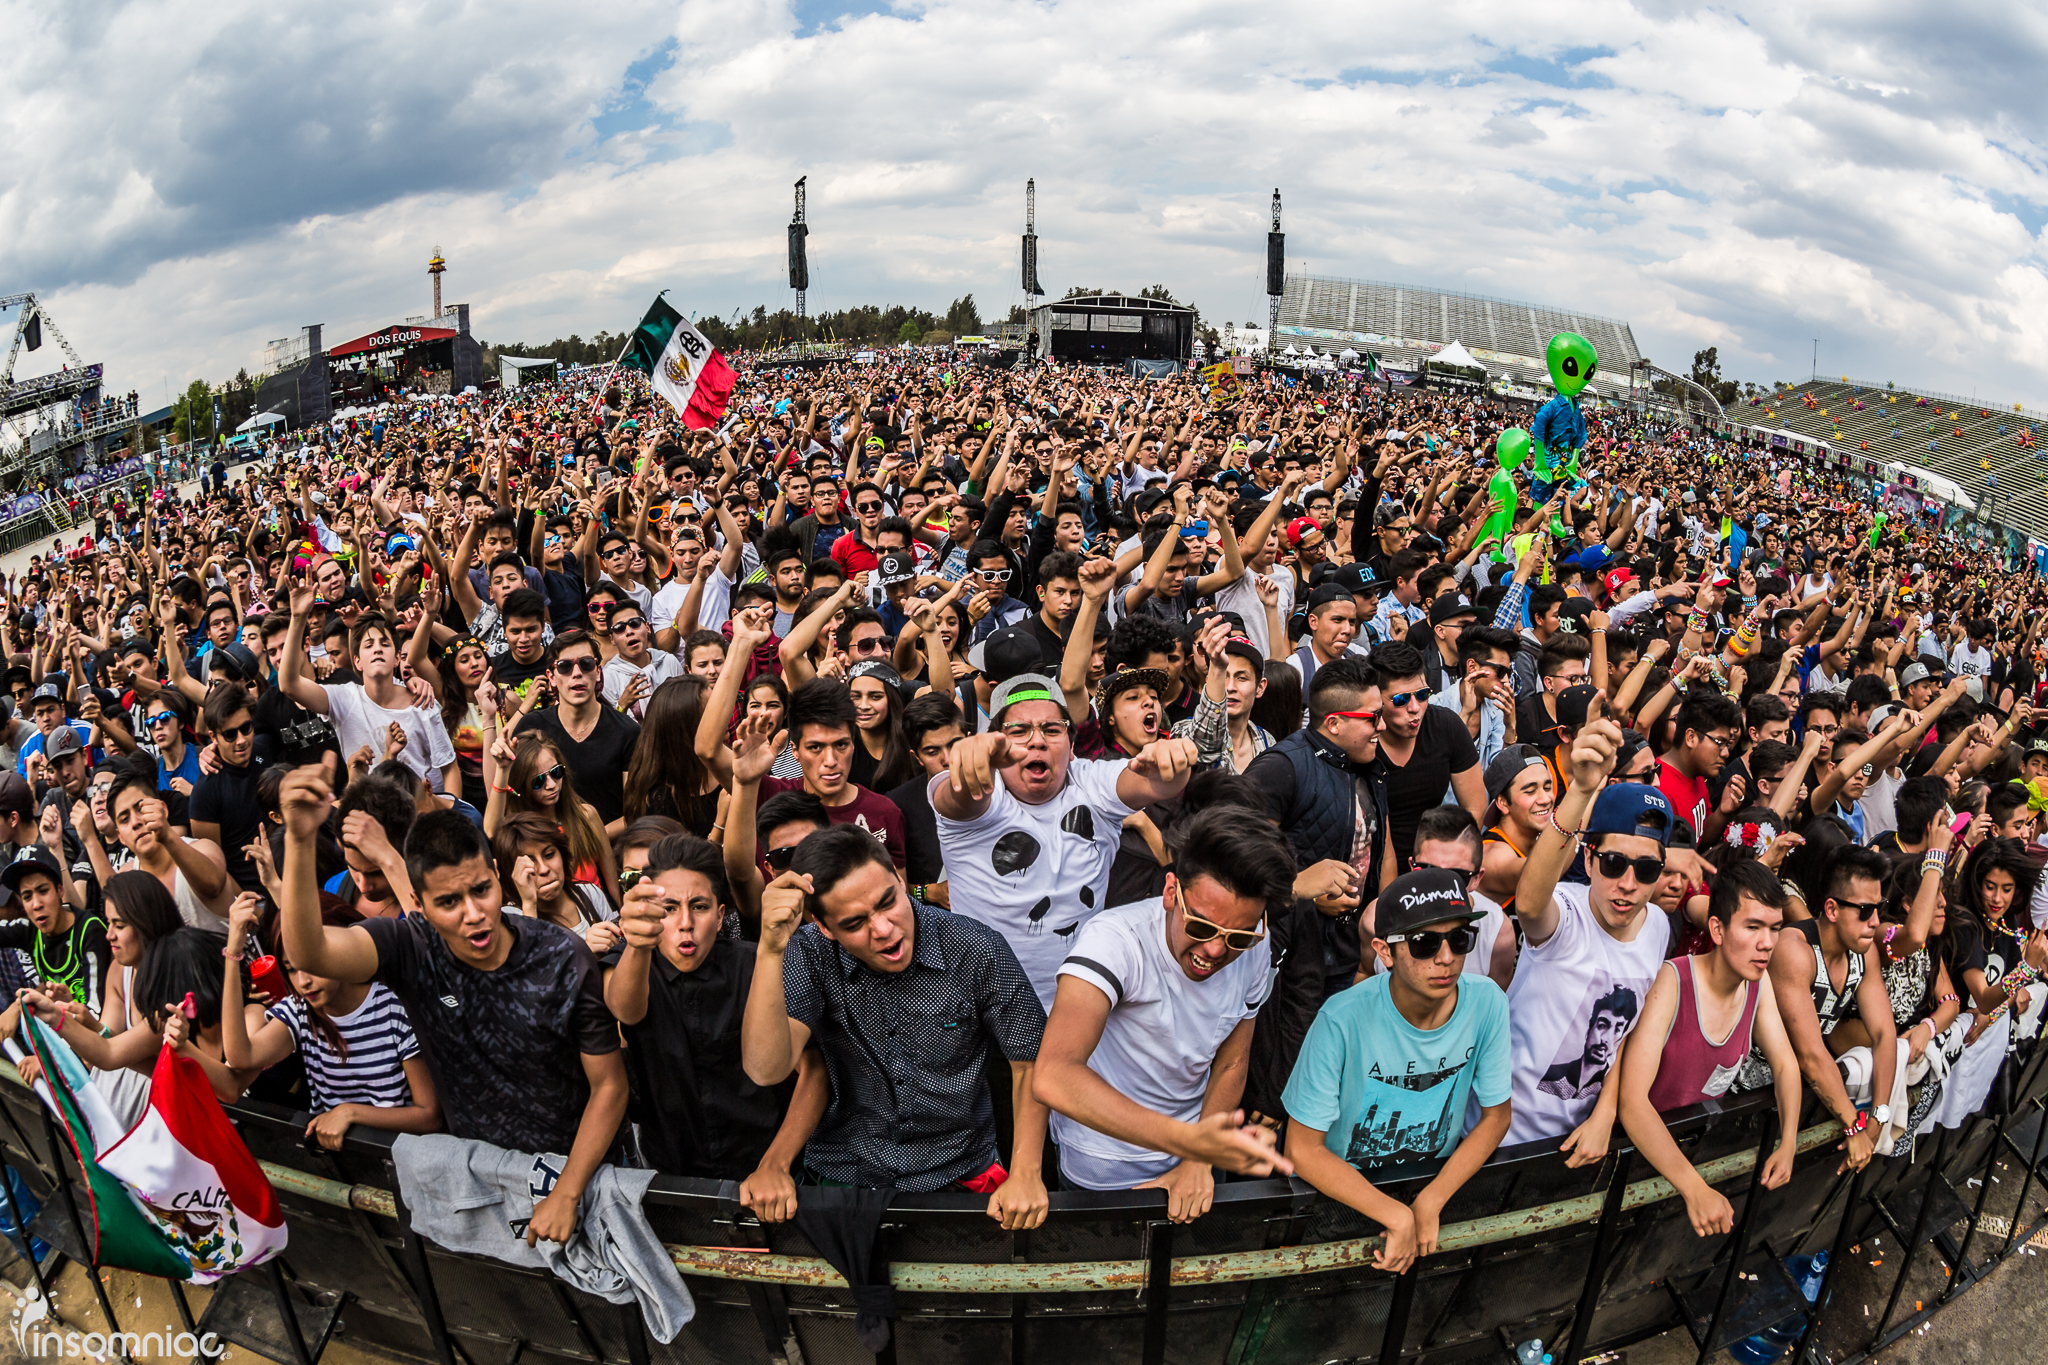 edcmx_2016_iwally_alivecoverage-23.jpg